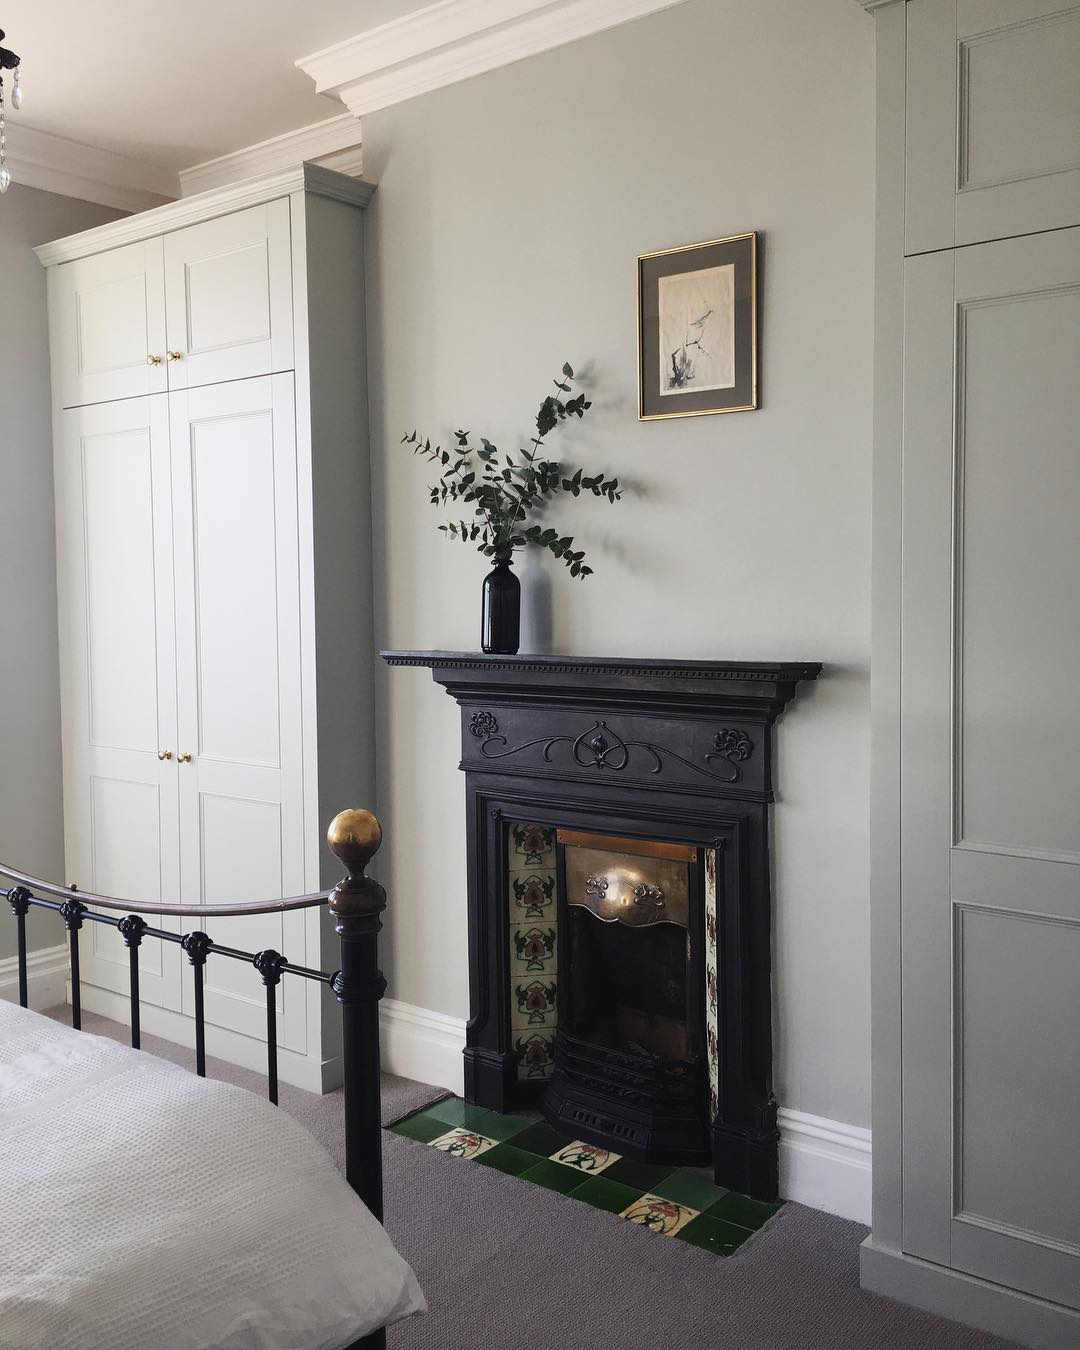 An original Edwardian fireplace in a bedroom.